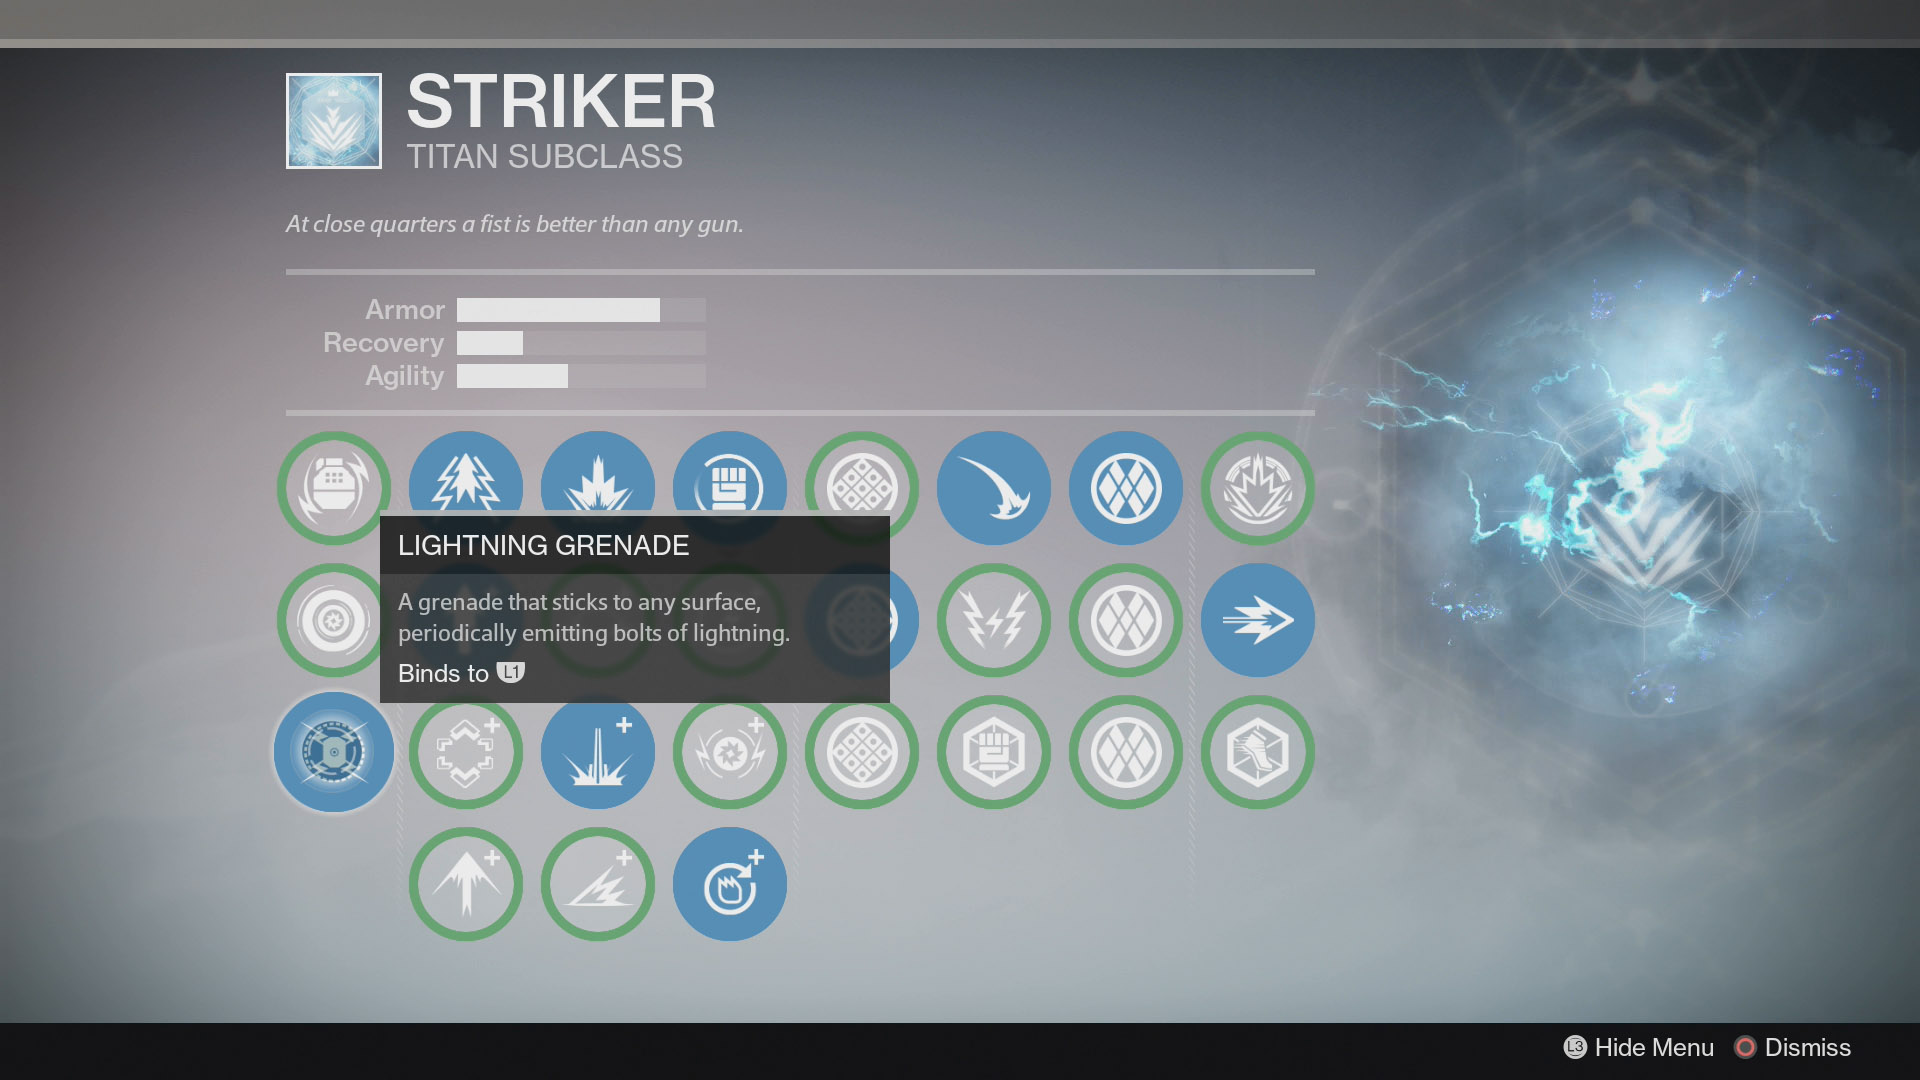 Destiny Striker Lightning Grenade